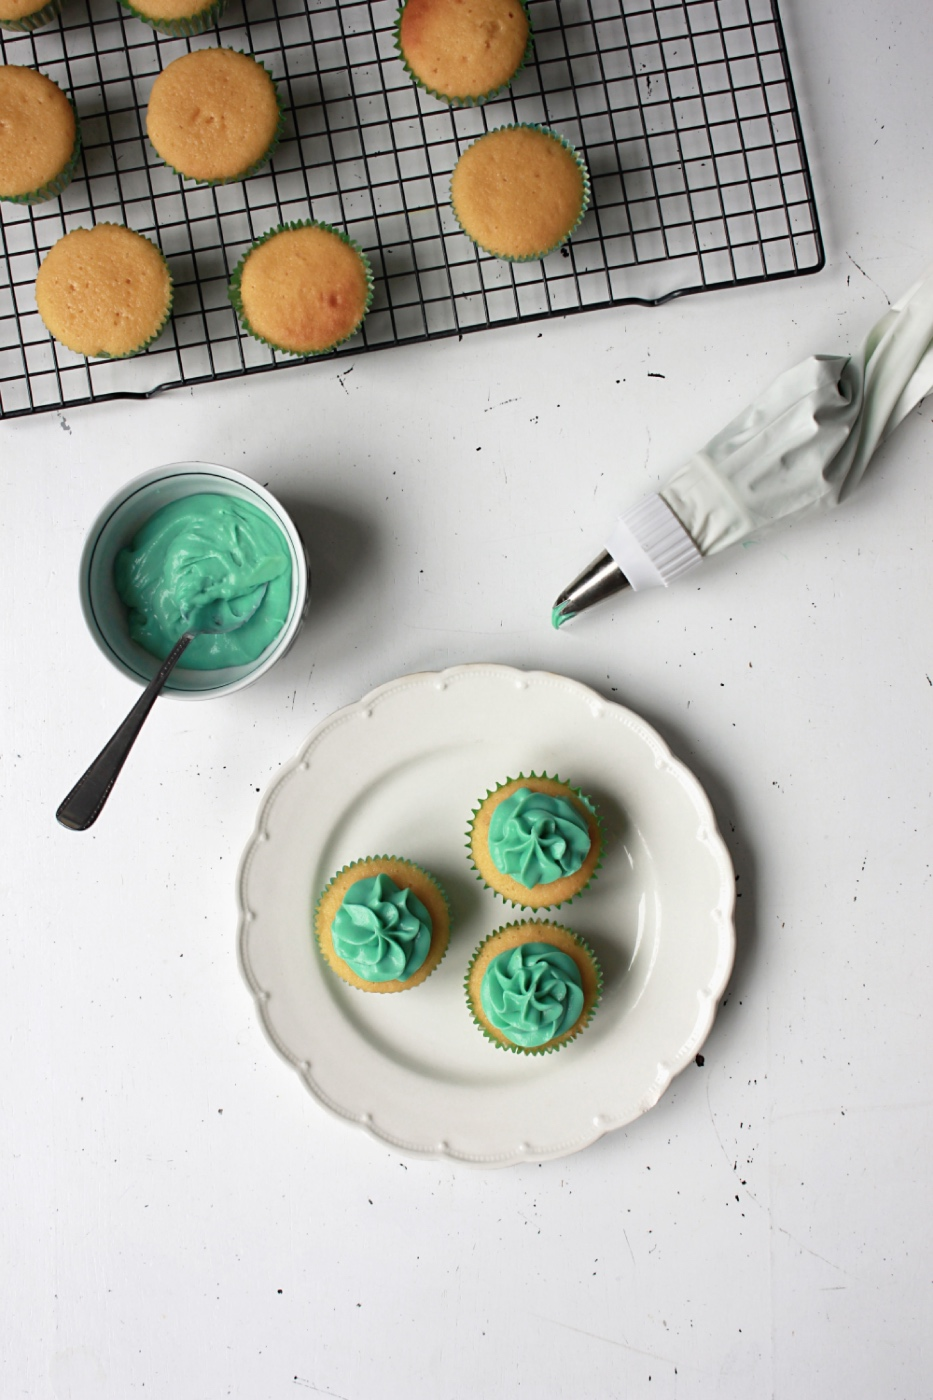 adding green frosting to the buttermilk cupcakes pop shop america